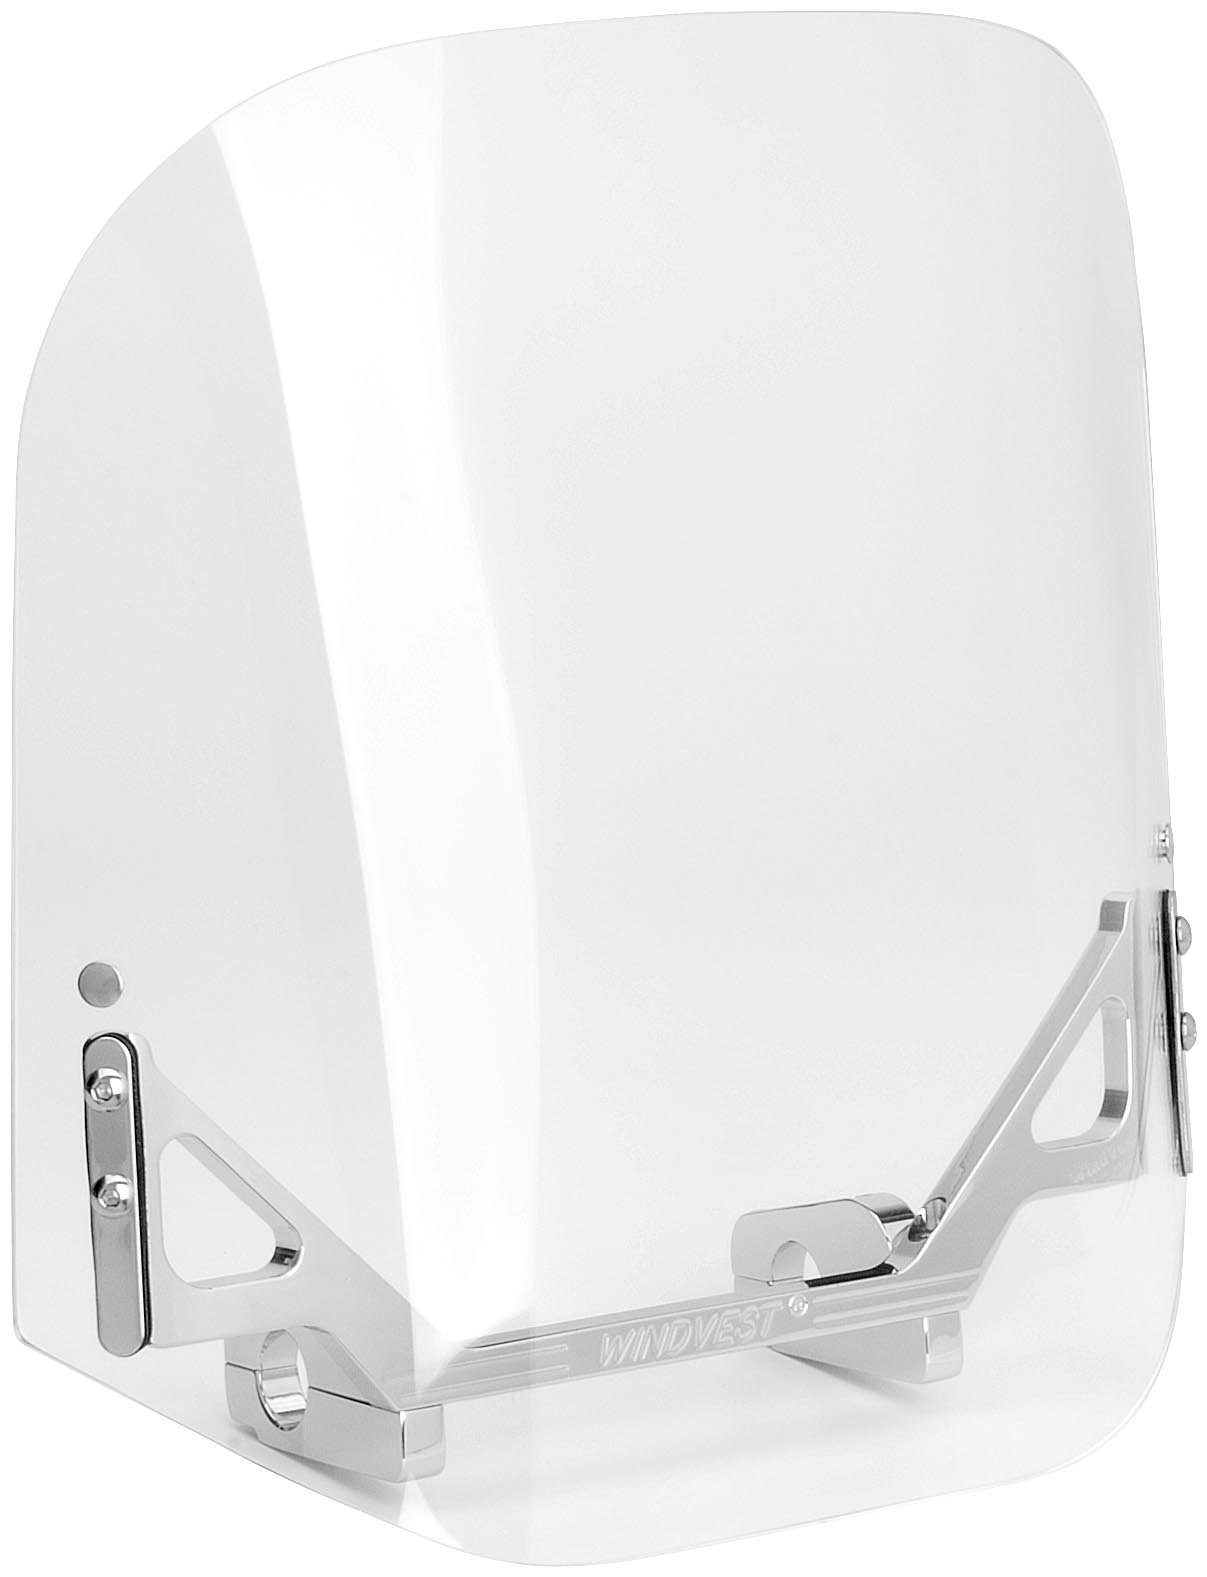 Wind Vest 14 in. Wide x 14 in. Tall Clear Windshield for Cruiser Motorcycles 1.